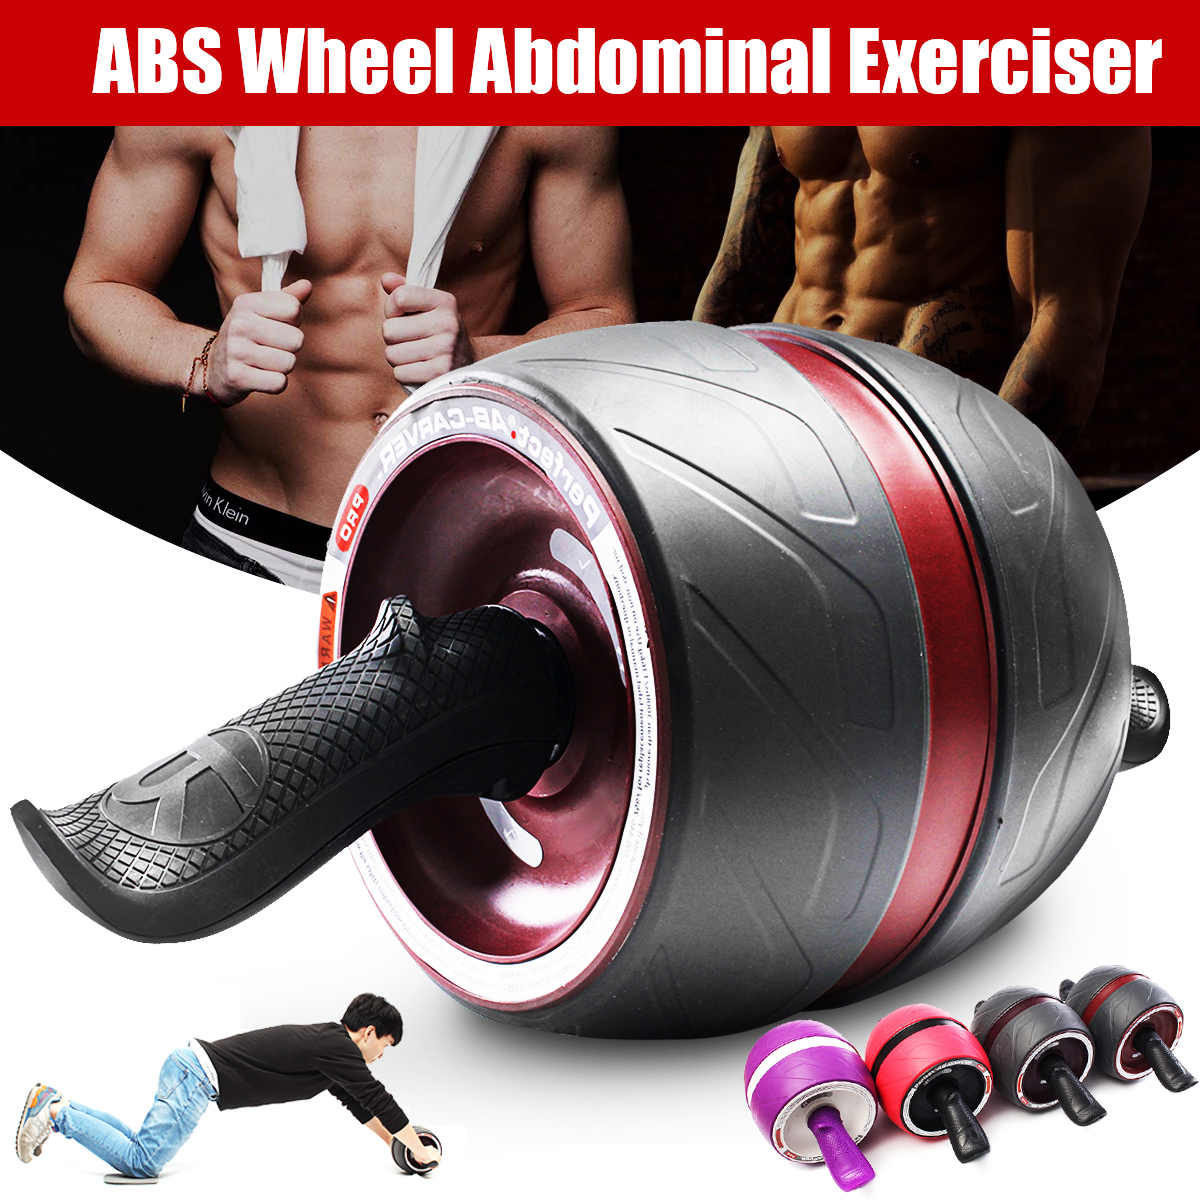 ABS Carver Wheel Abdominal Exerciser Power Roller Fitness Training Gym Workout